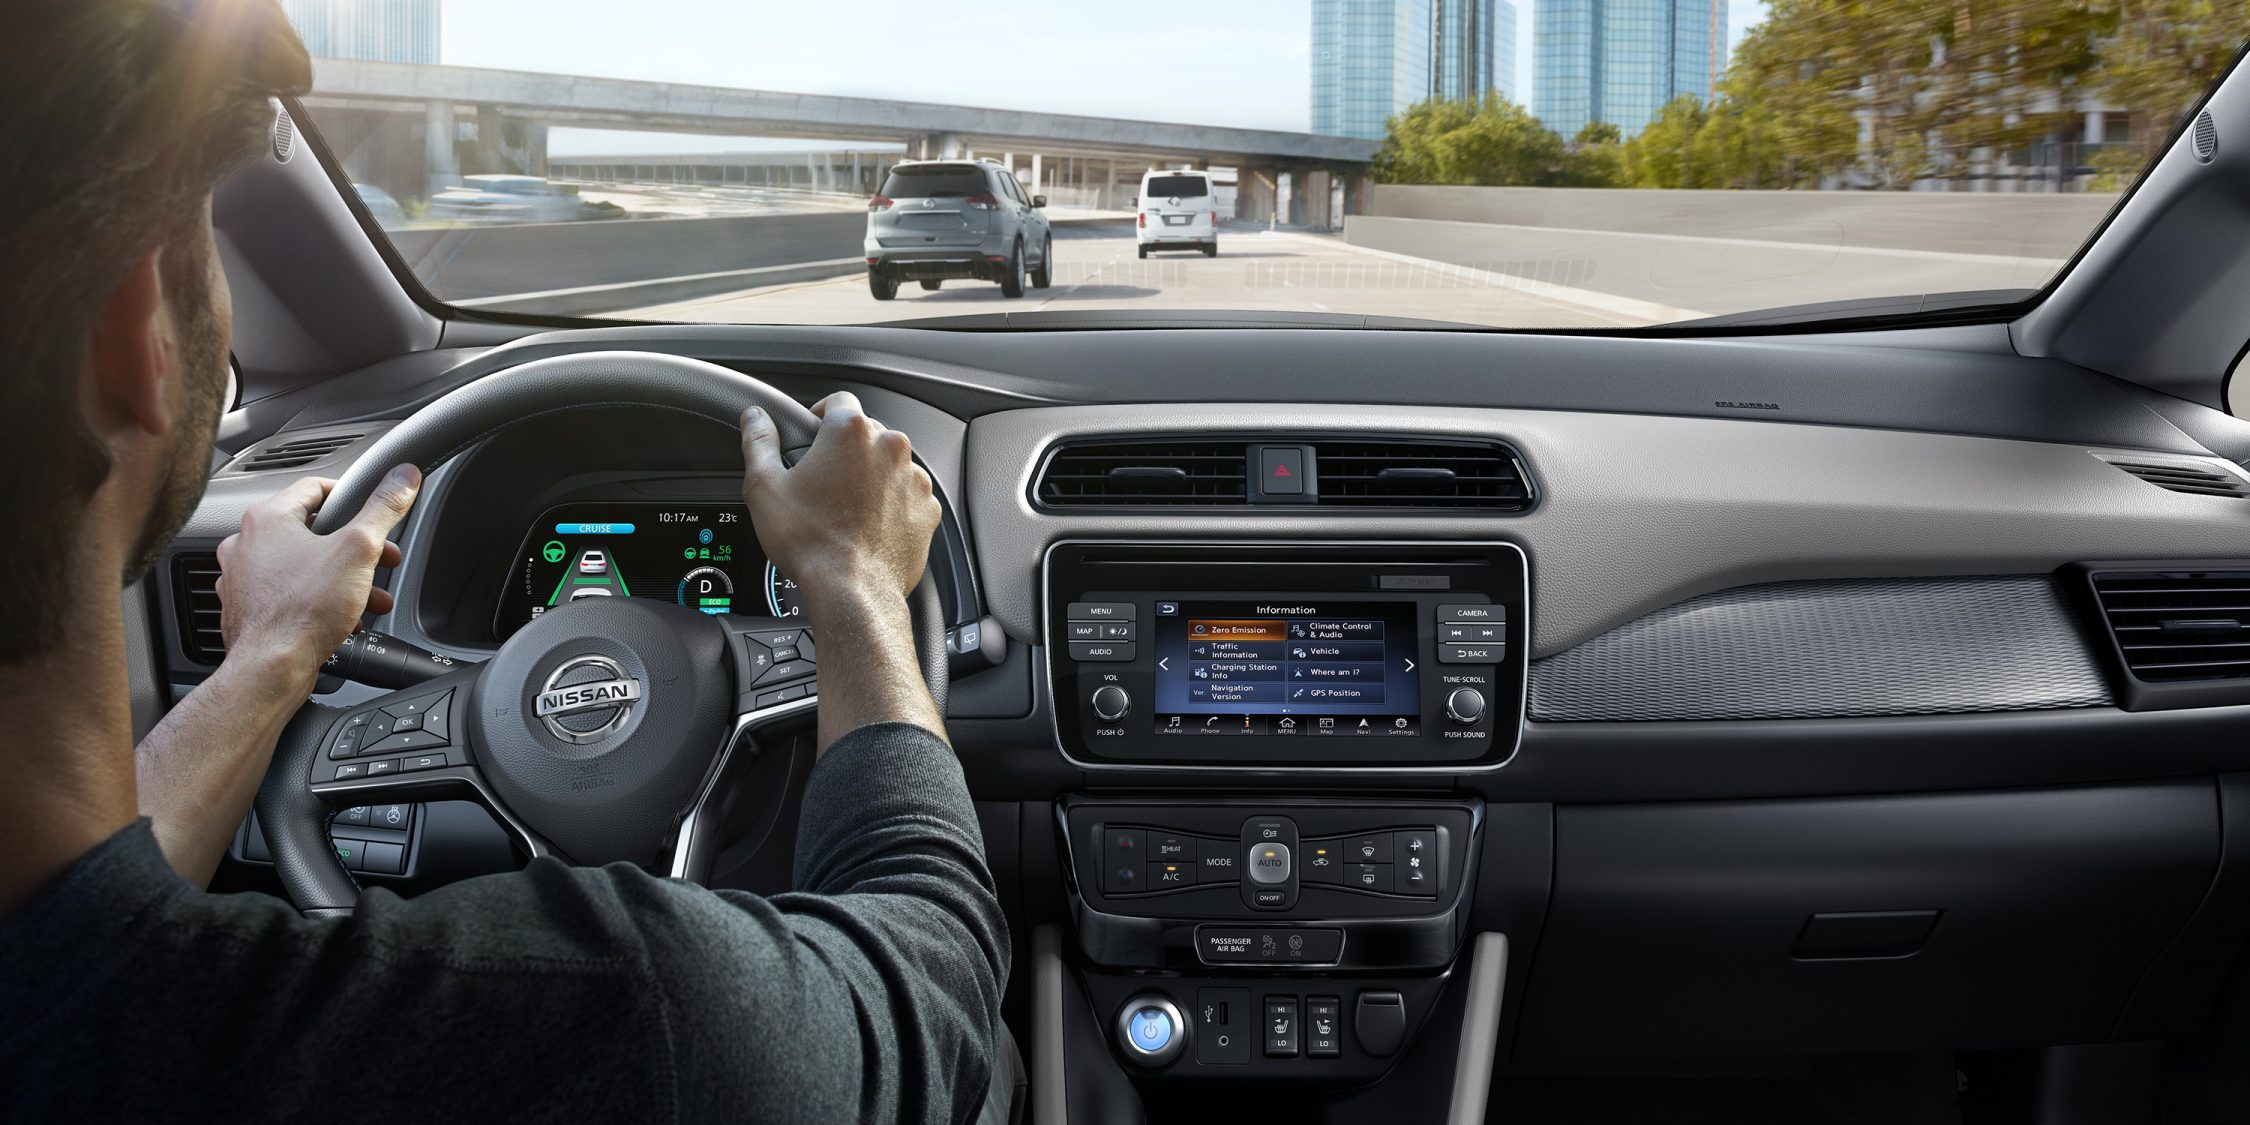 New Nissan LEAF interior showing person driving on a highway